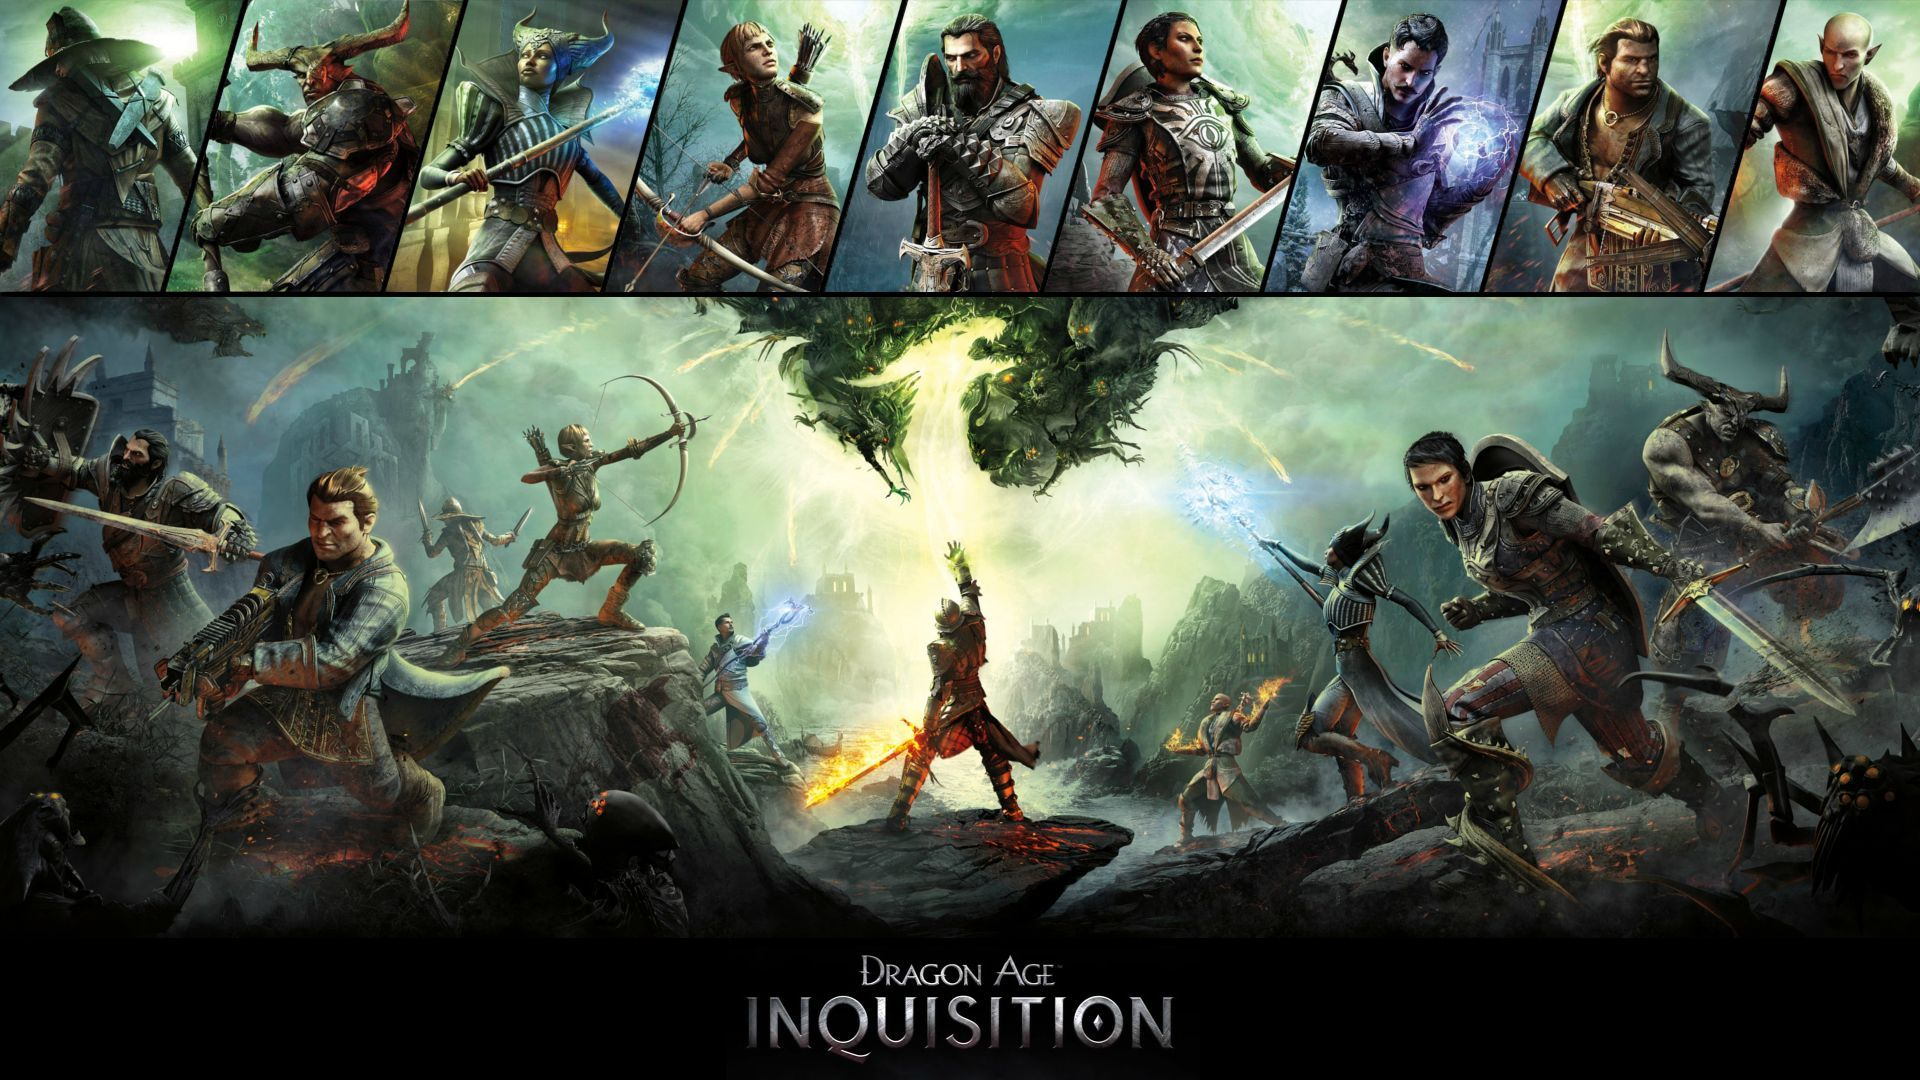 dragon age inquisition wallpapers free just free wallpaper high